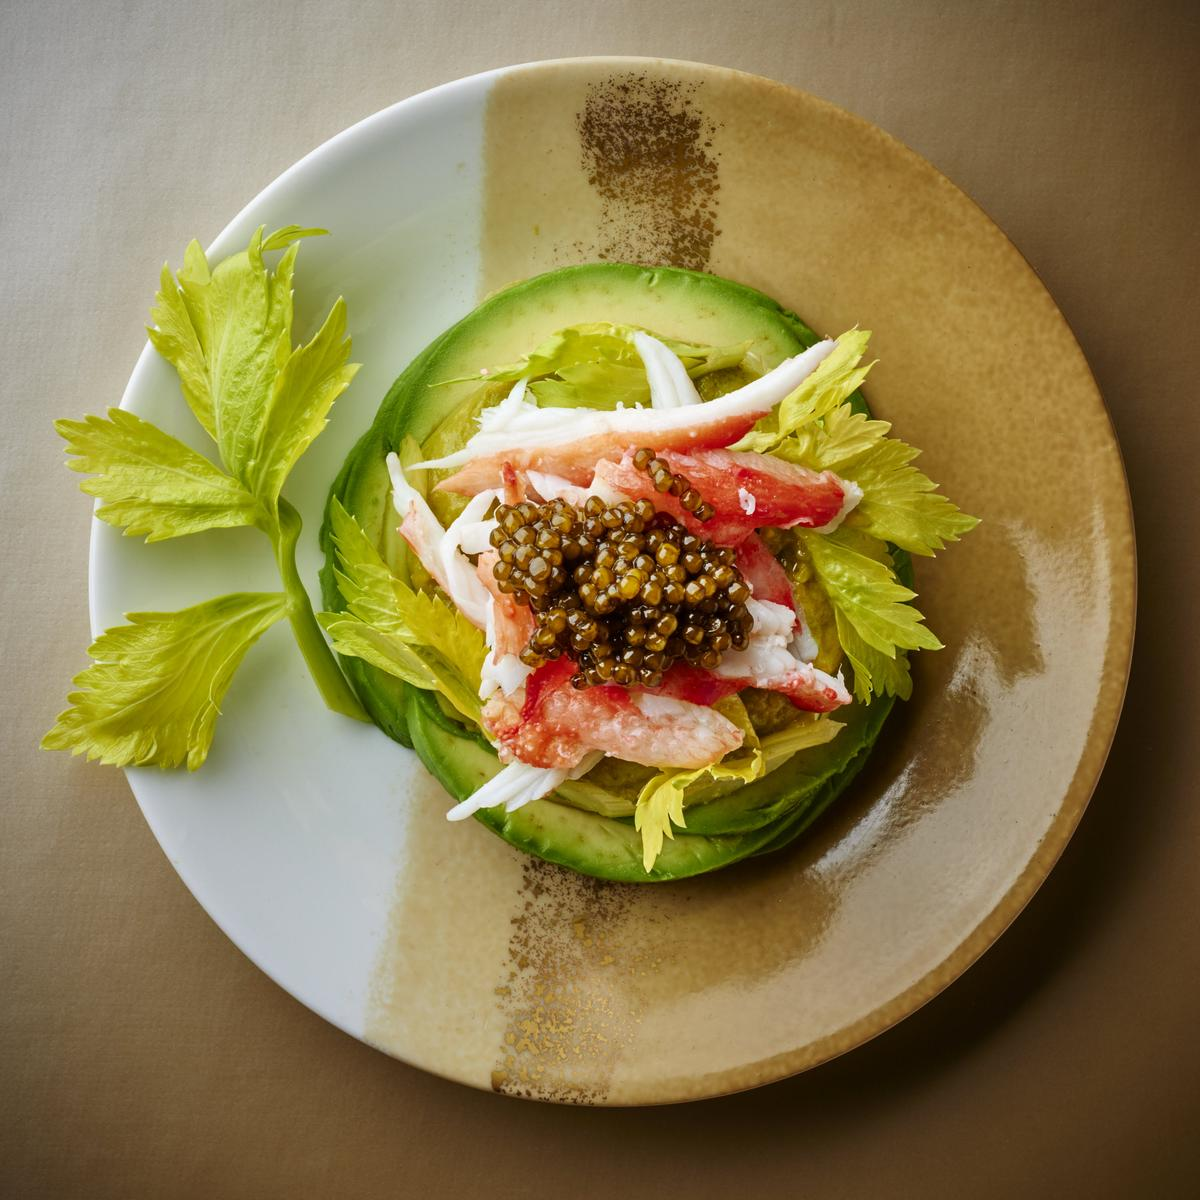 Recette king crabe avocat et caviar cuisine madame figaro for Idee entree facile